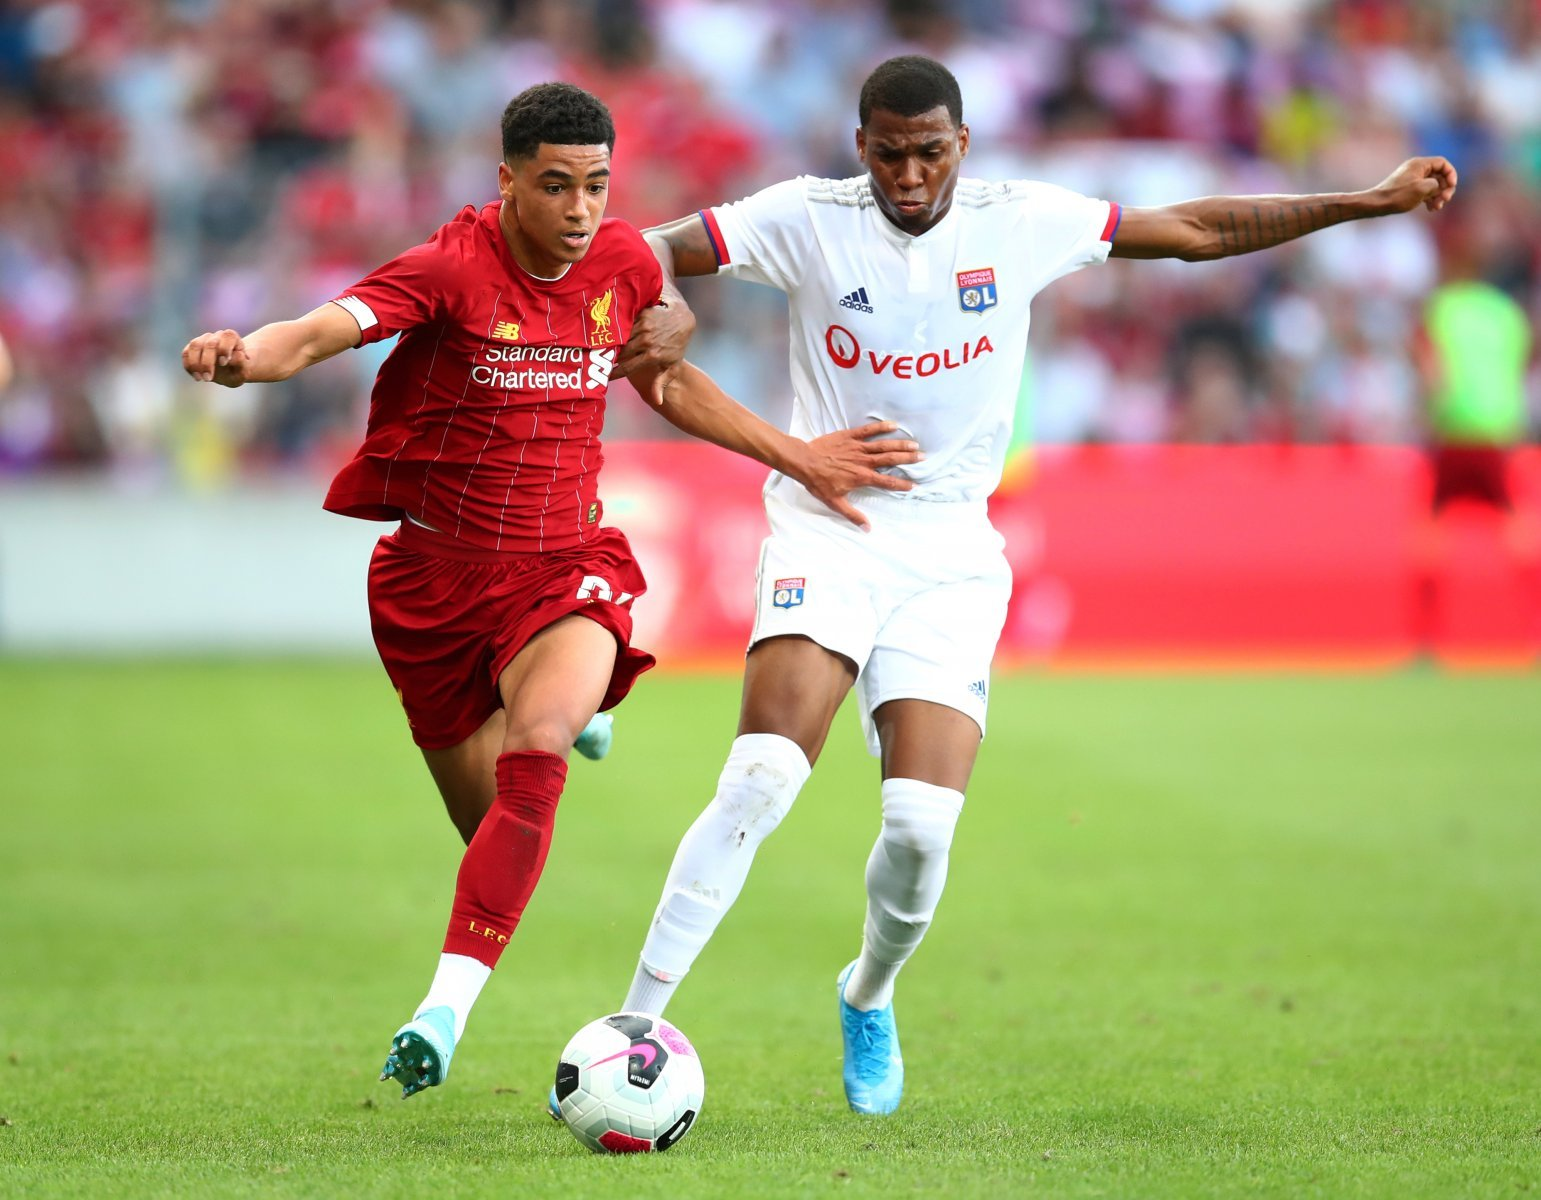 Liverpool: Ki-Jana Hoever selected for Netherlands' Under-17 World Cup squad